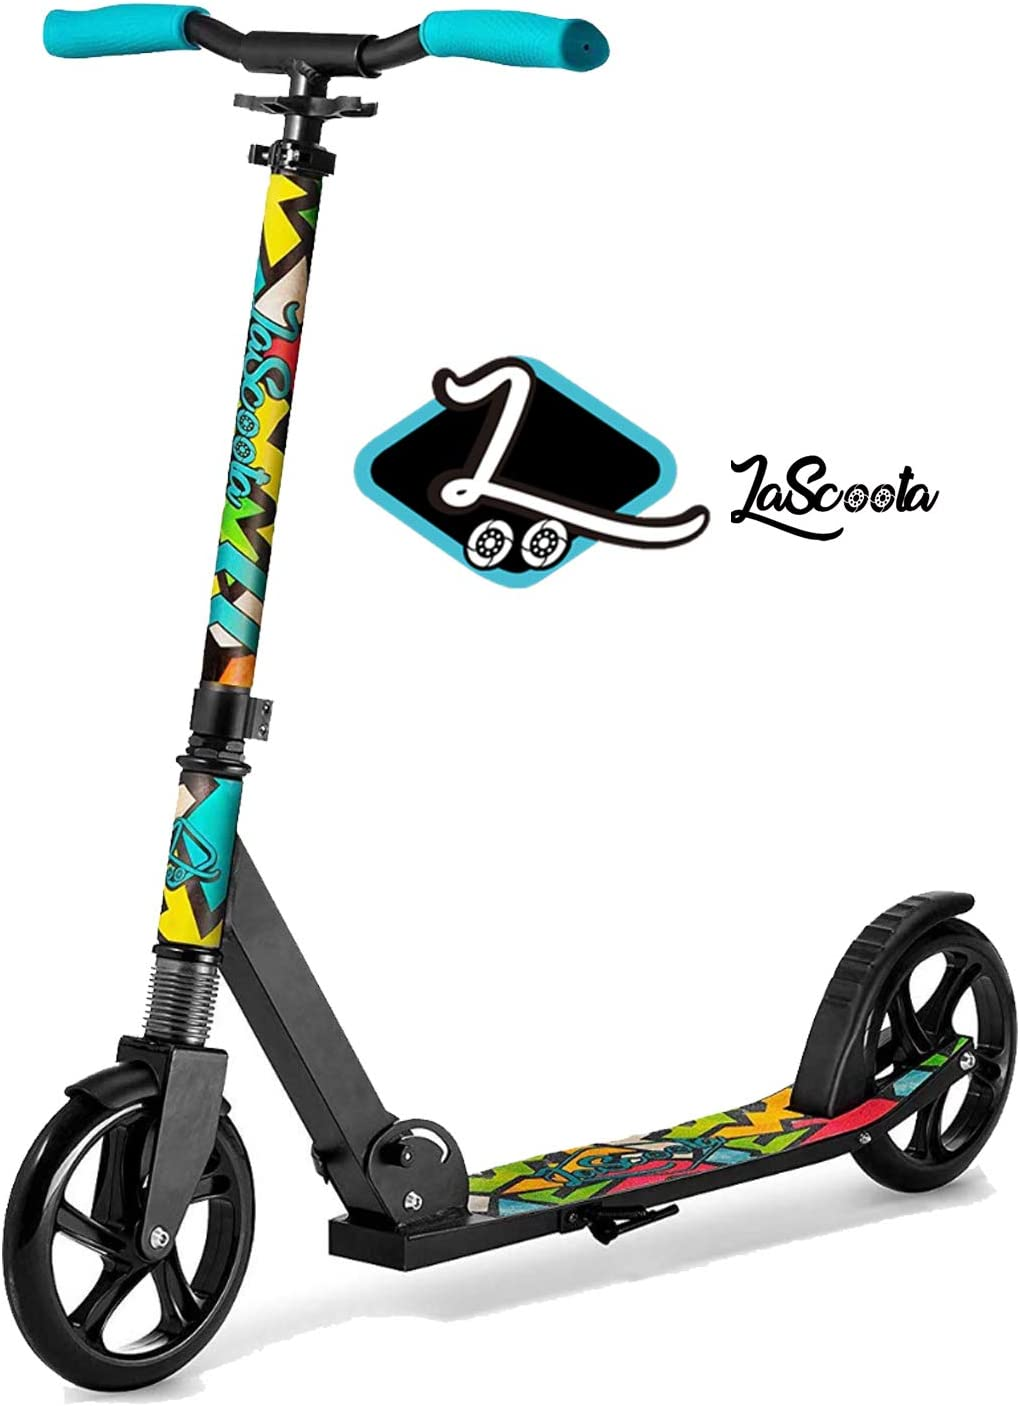 """Lascoota Scooters for Kids 8 Years and up - Quick-Release Folding System - Dual Suspension System + Scooter Shoulder Strap 7.9"""" Big Wheels Great Scooters for Adults and Teens"""